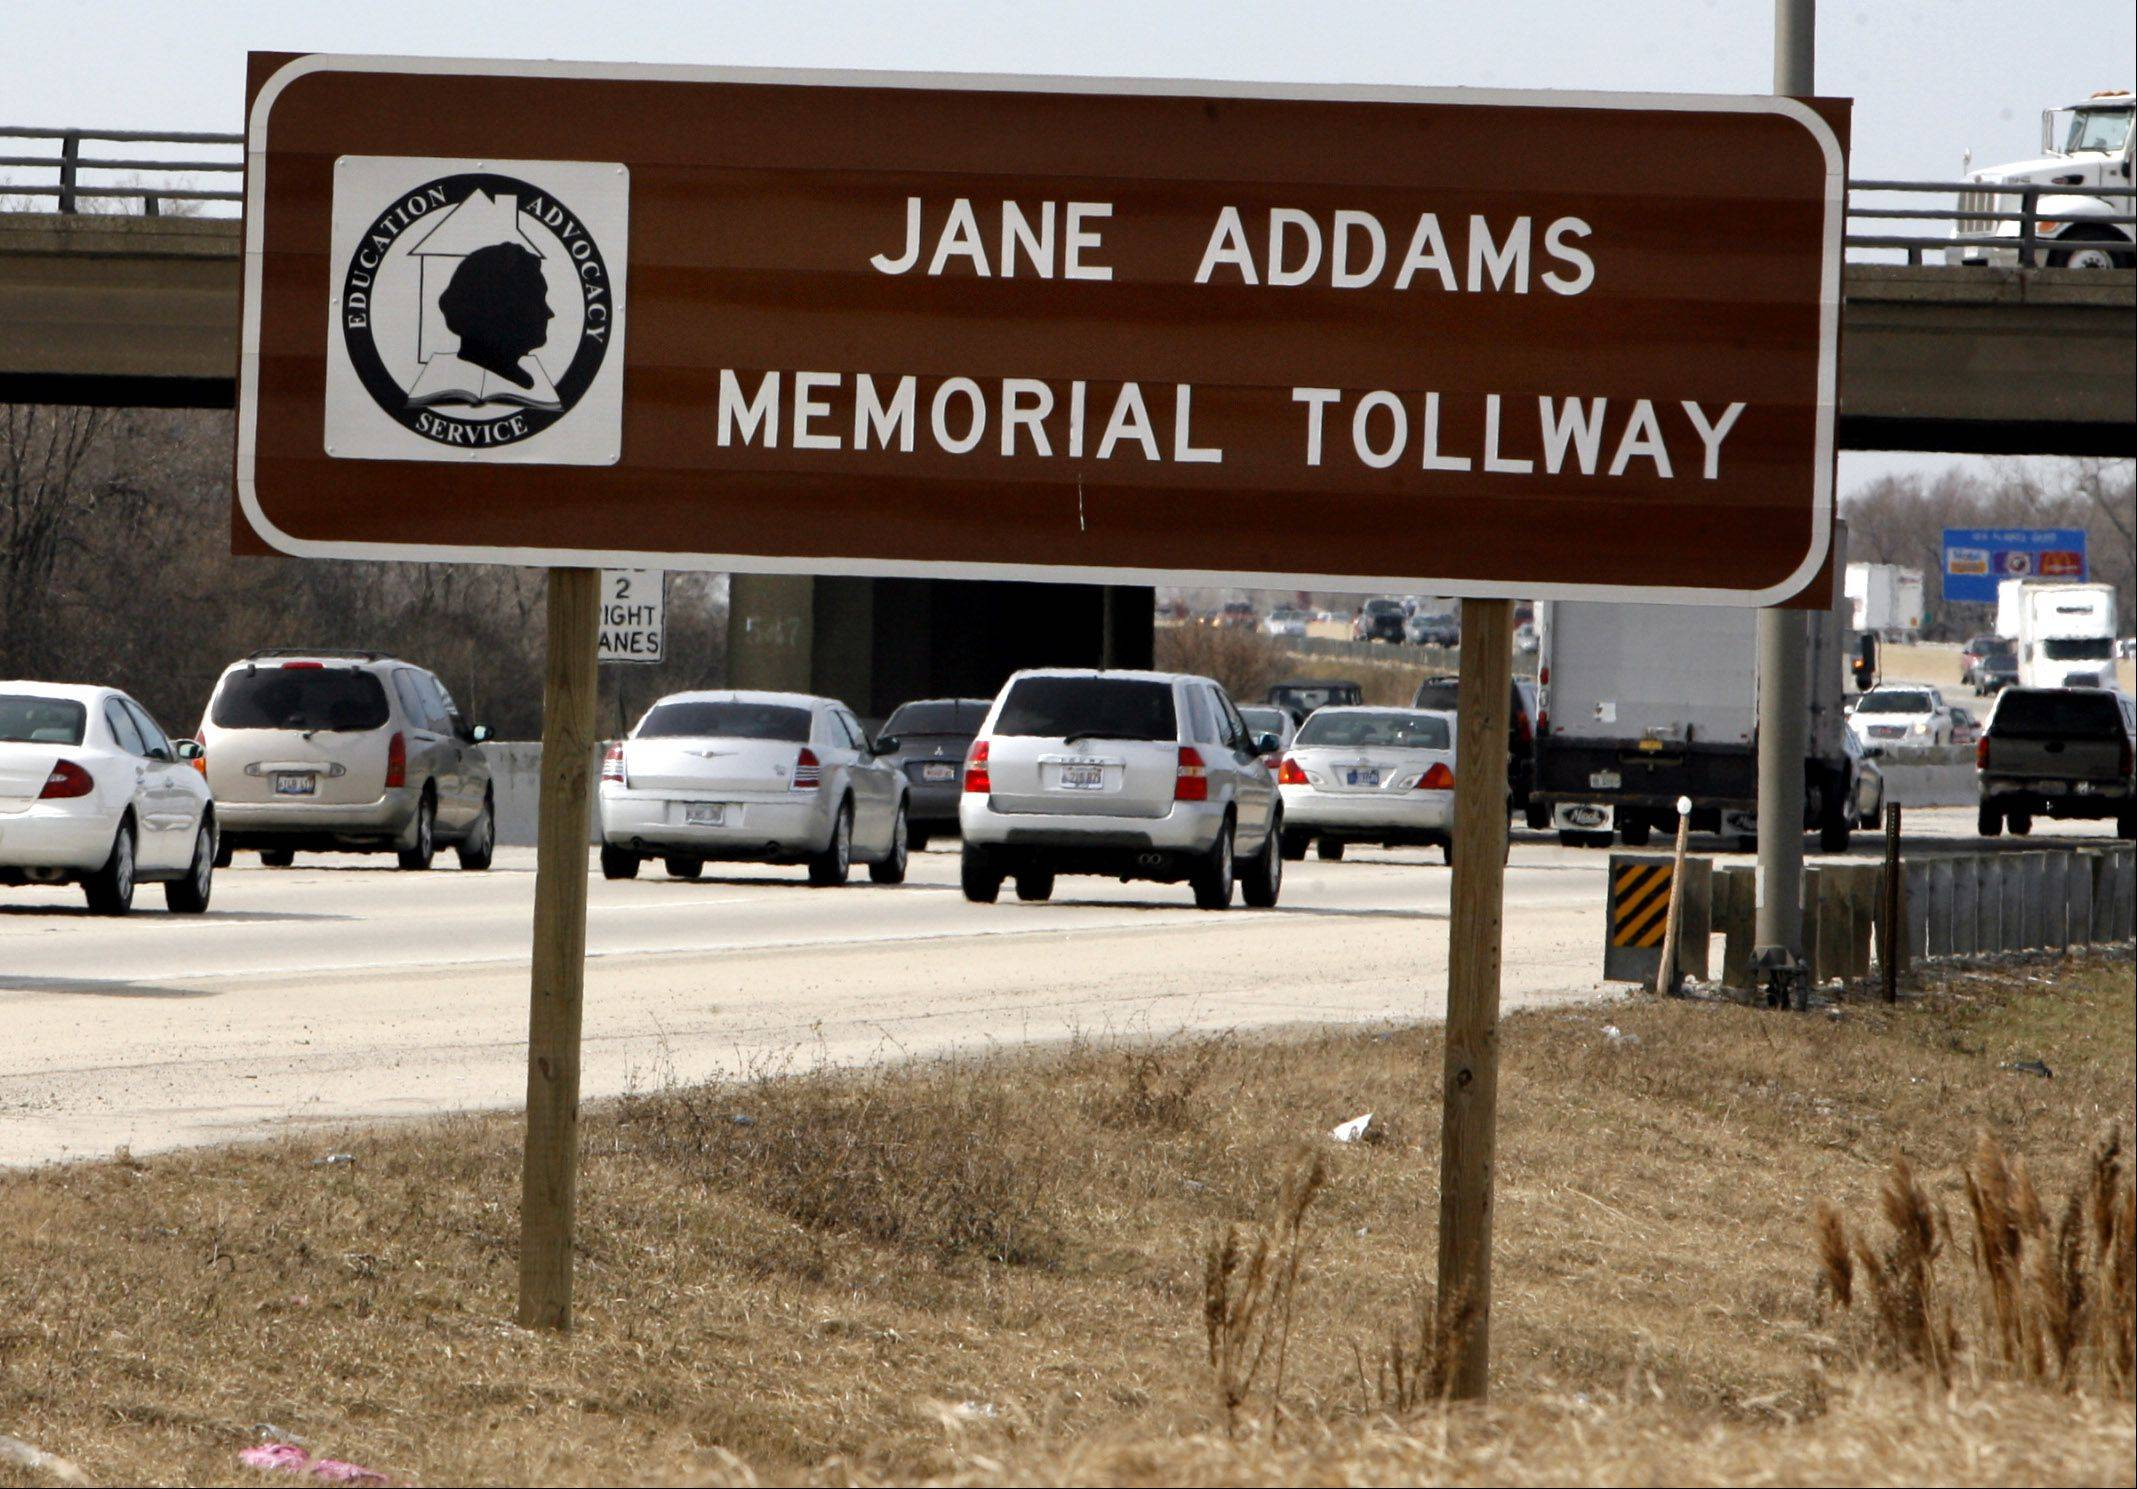 Will we see a Jane Addams Tollway and Railway in the future?